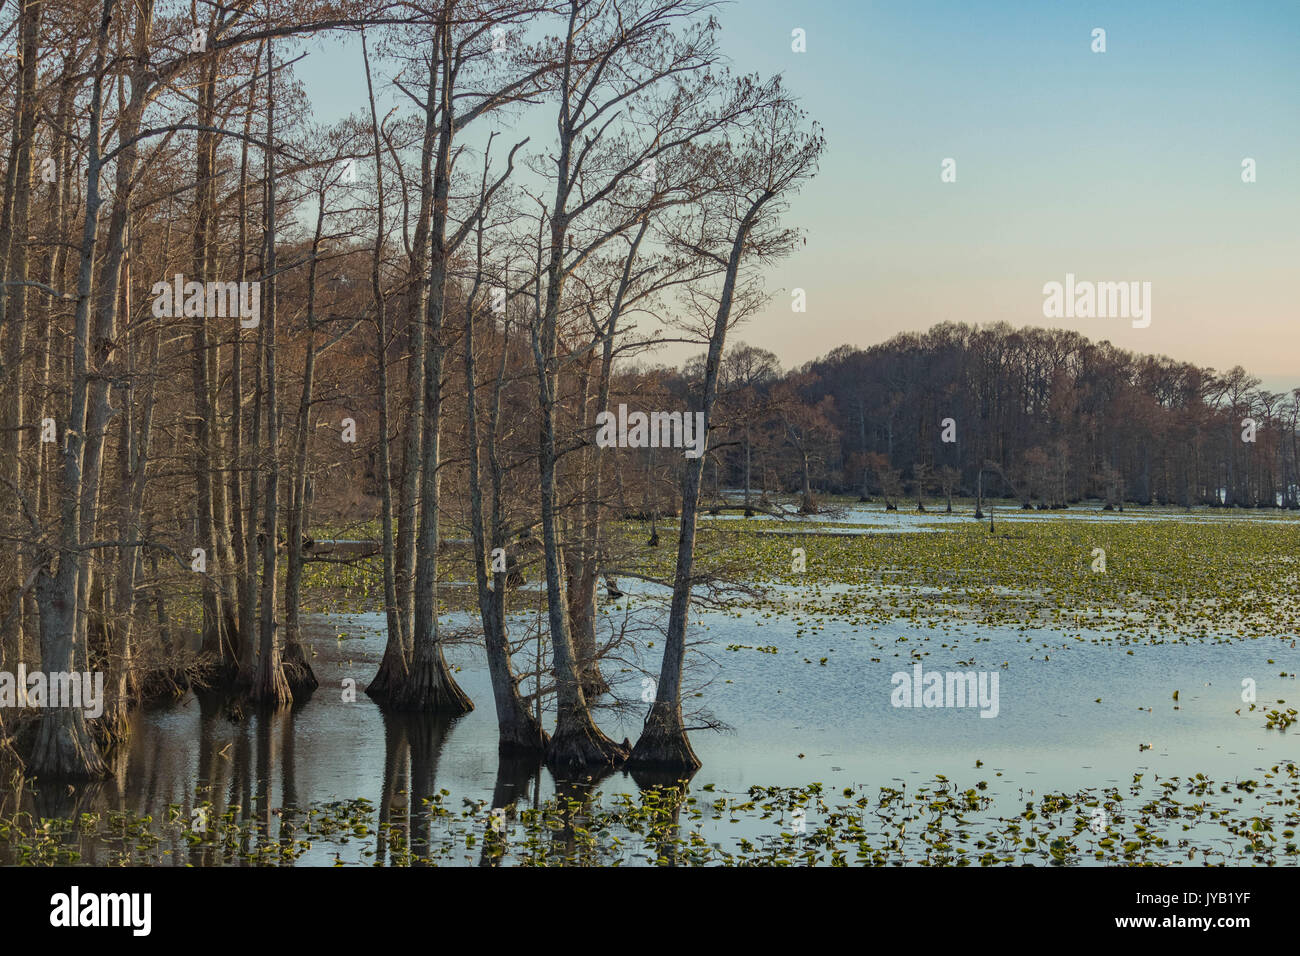 Reelfoot Lake Tennessee Stock Photos & Reelfoot Lake Tennessee Stock